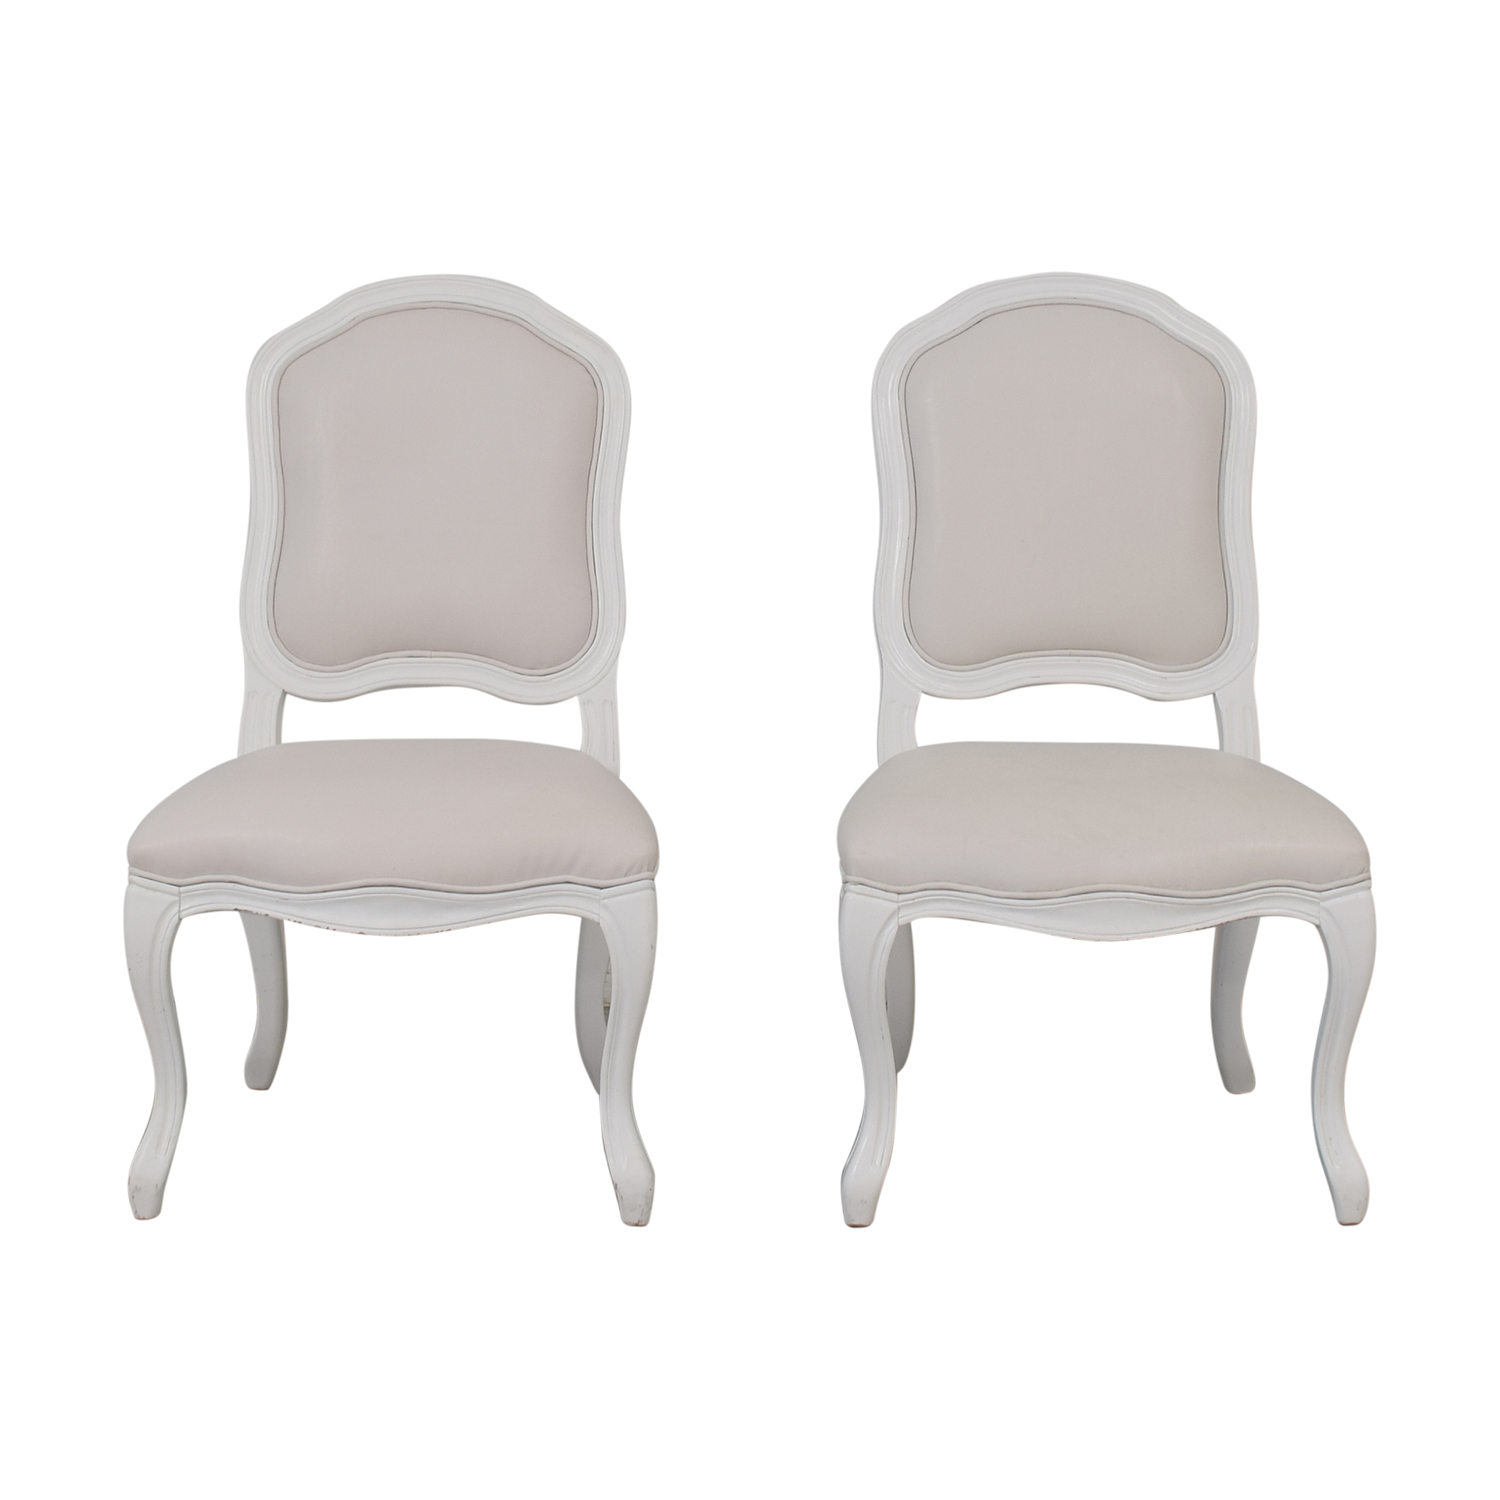 CB2 CB2 Stick Around Side Chairs Chairs